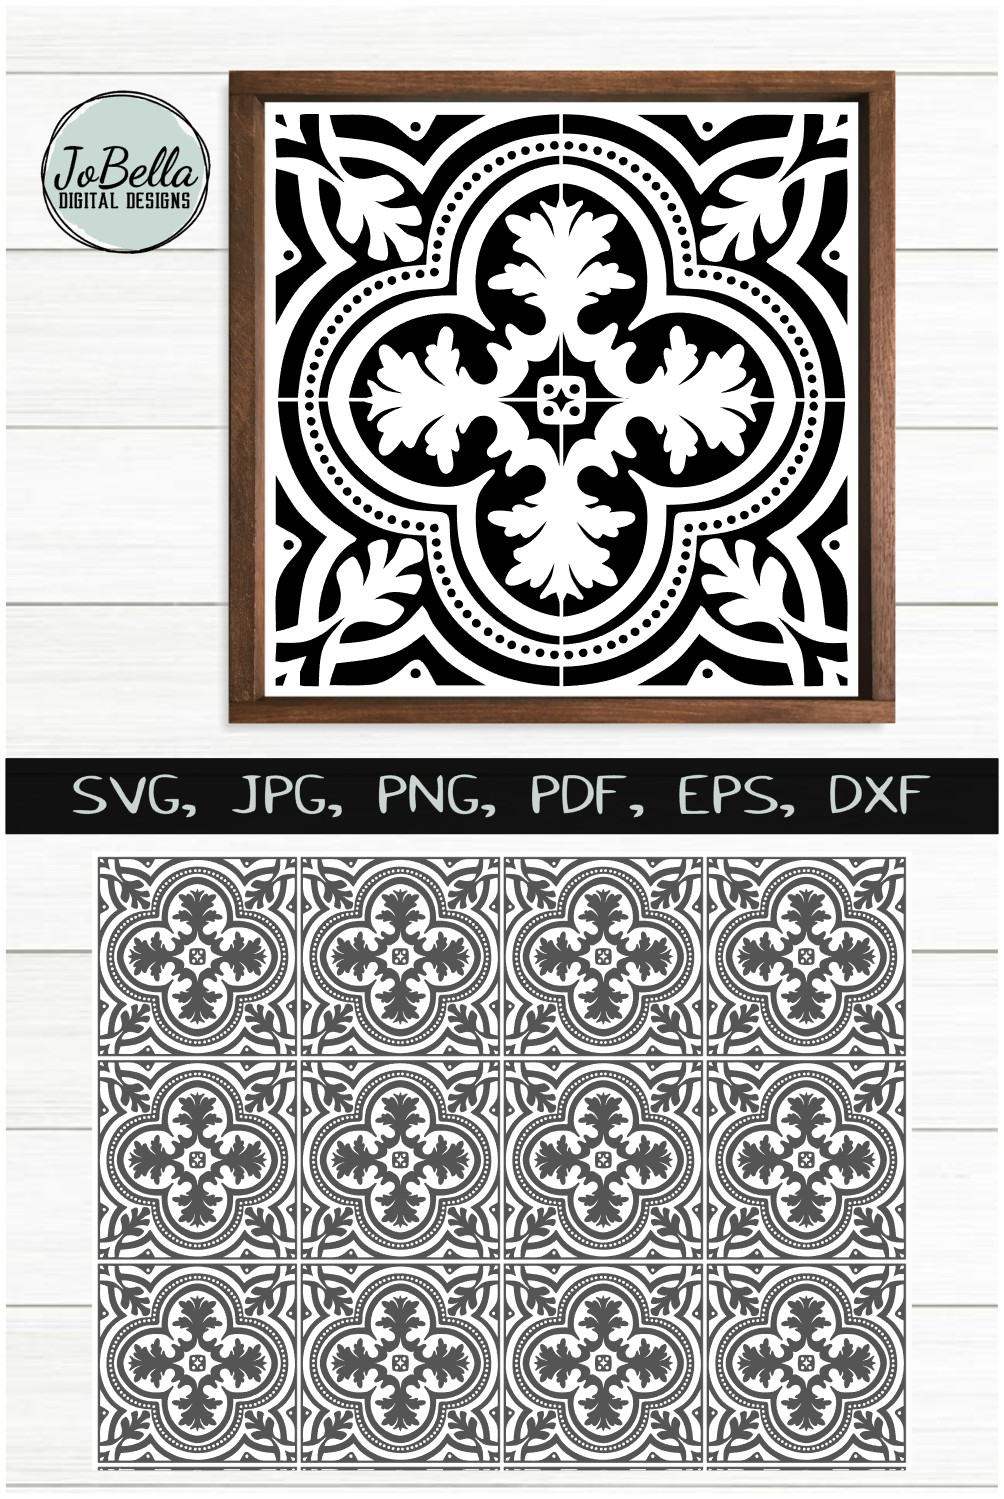 Spanish Tile 1 SVG, Stencil Template and Printable example image 4